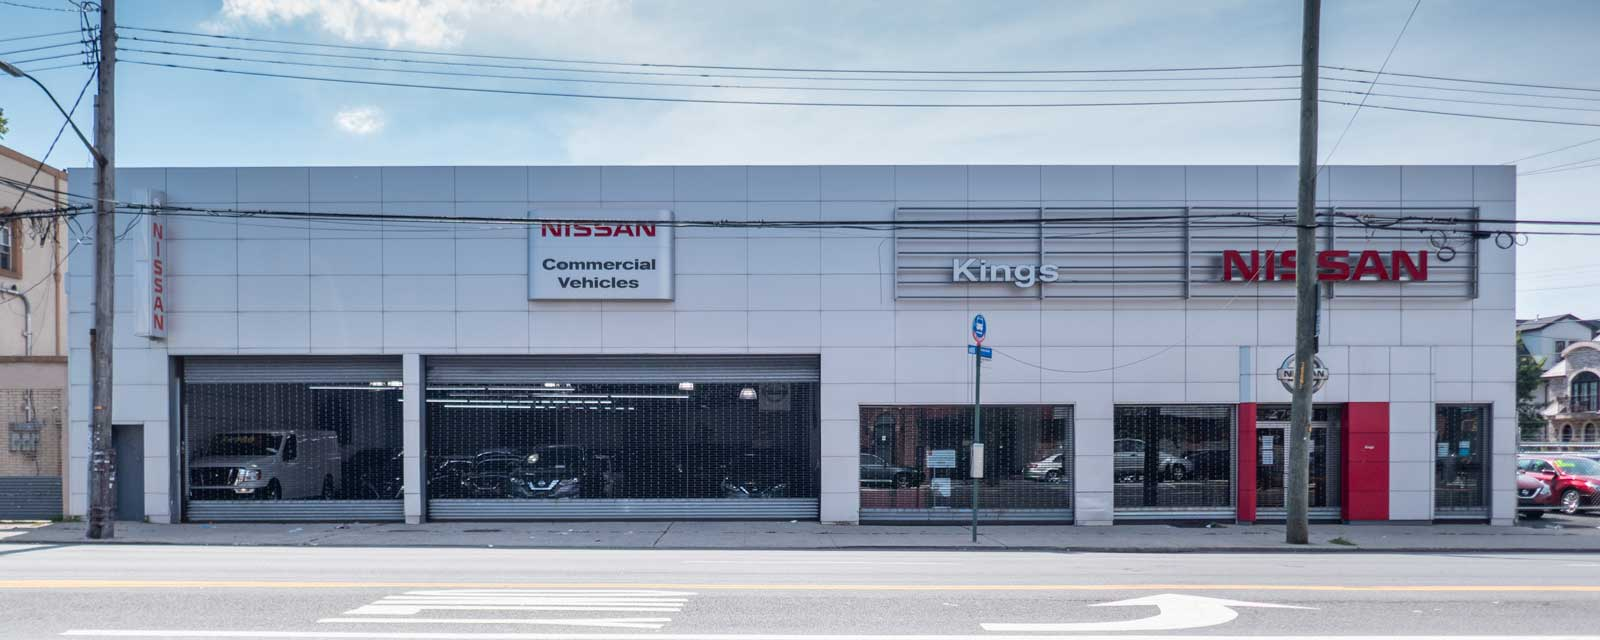 Kings Nissan former Bamboo Lounge Brooklyn